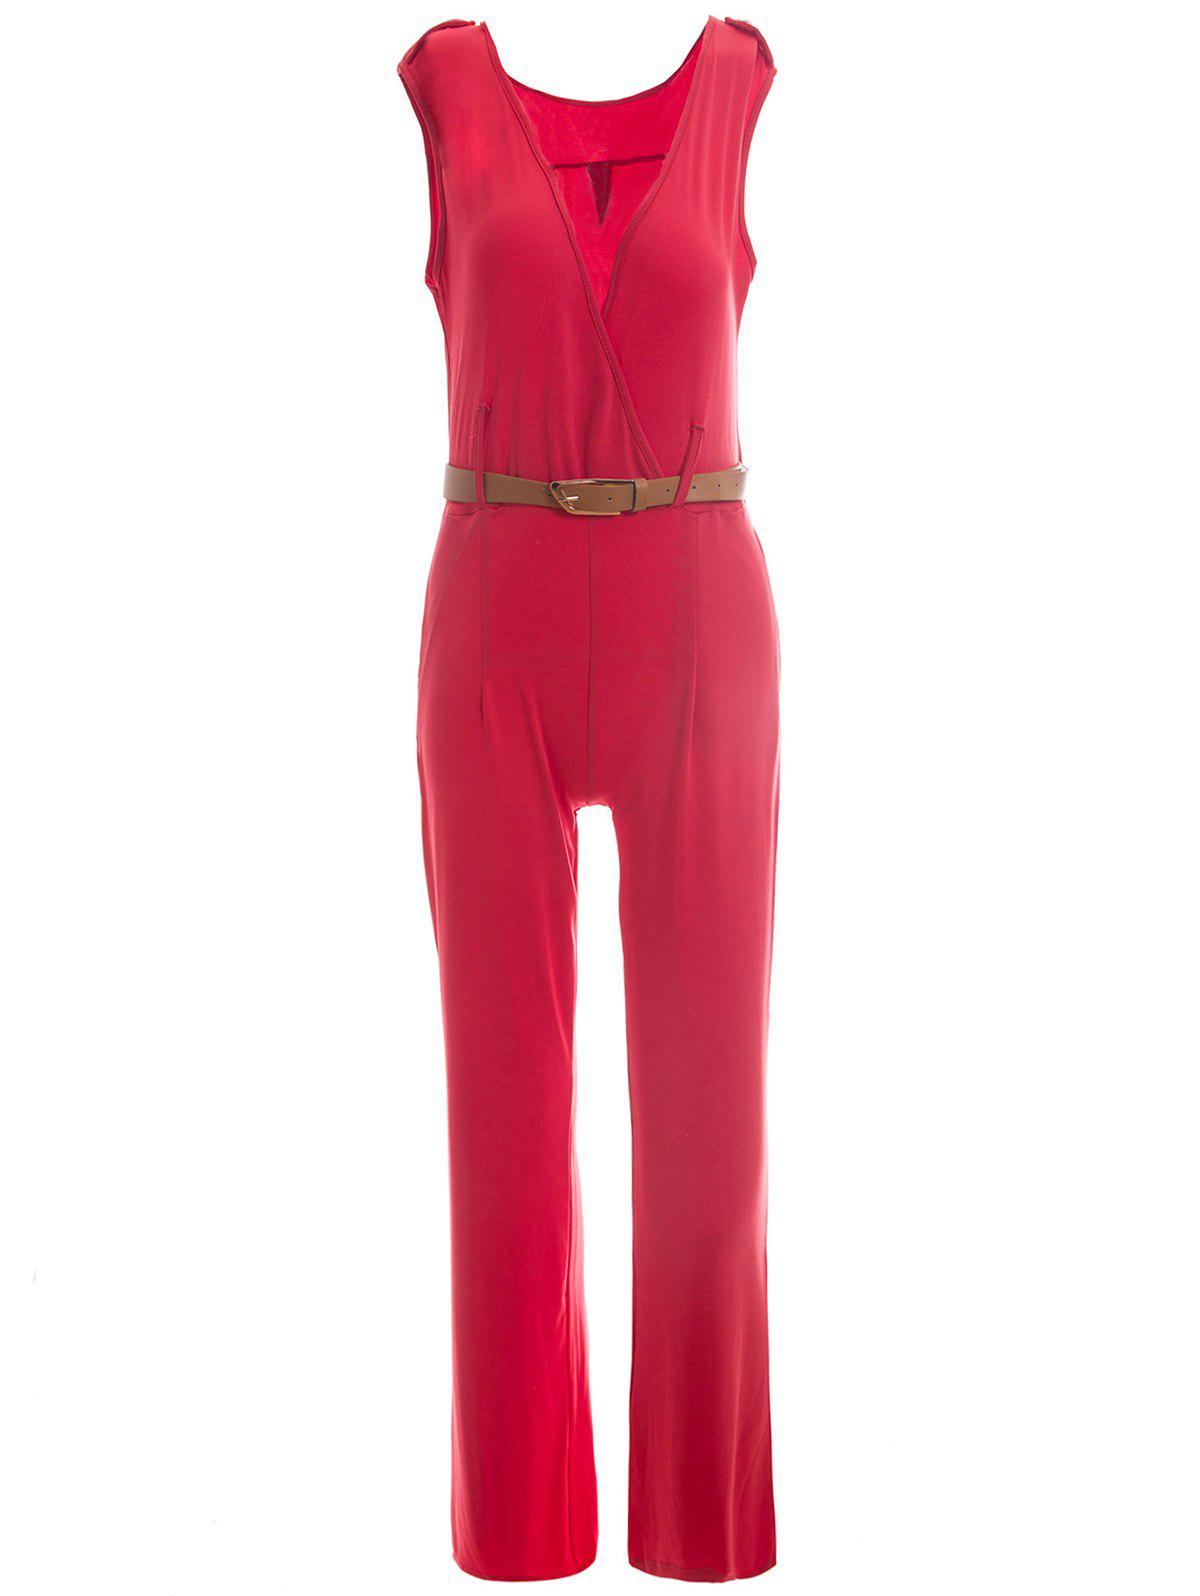 Trendy Sleeveless Plunging Neck Epaulet Solid Color Women's Jumpsuit - RED S